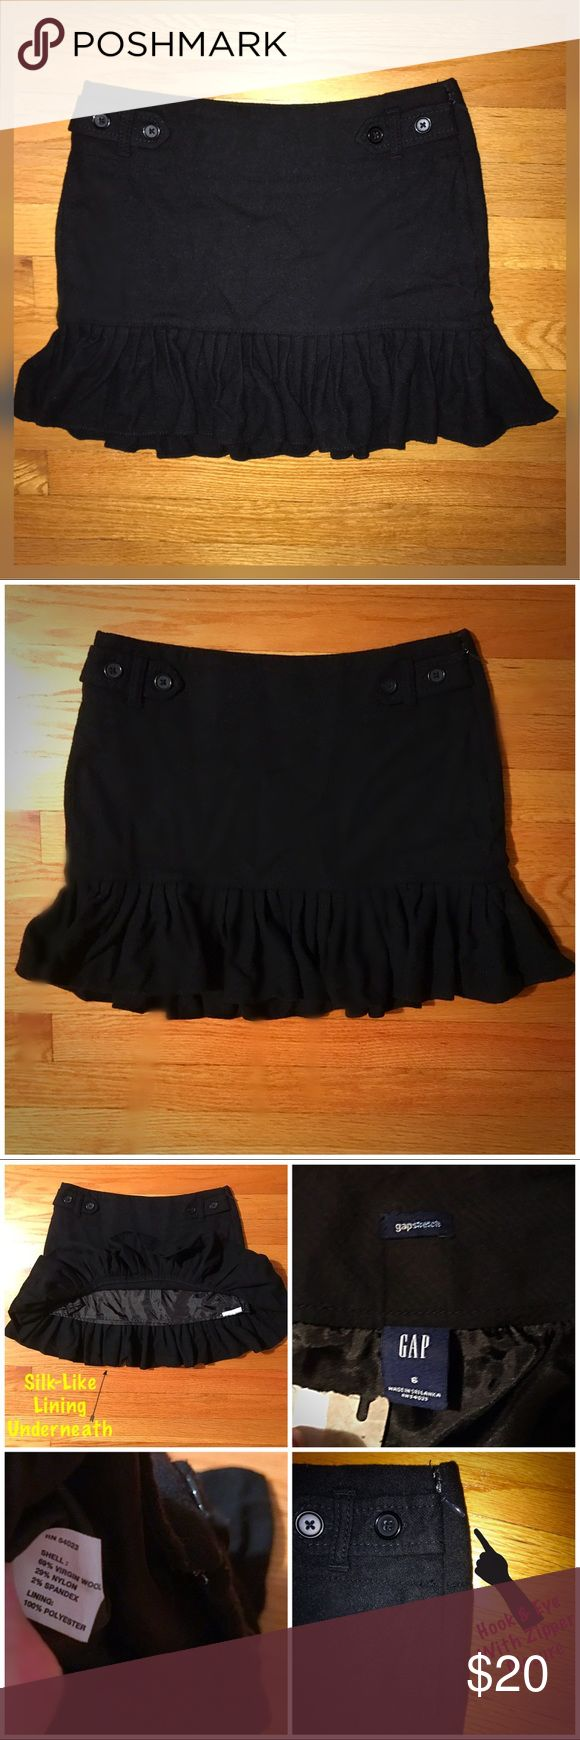 GAP Stretch Wool Black Ruffle Pleated Skirt Fit, 6 Gap stretch Wool Skirt. Fit &Flare style w/ Pleated Ruffle bottom. Size: 6. Condition: worn once, washed, taken out a month later, tried on, washed again, then shoved in my drawer (hence the wrinkles) and that has where its stayed for months. Too small. Silver Hook & eye with zipper side closure. Each side of front has a strap going through a belt loop w/ 2large buttons for detail. Skirt shell made of: 69% Virgin Wool, 29% Nylon and 2%…